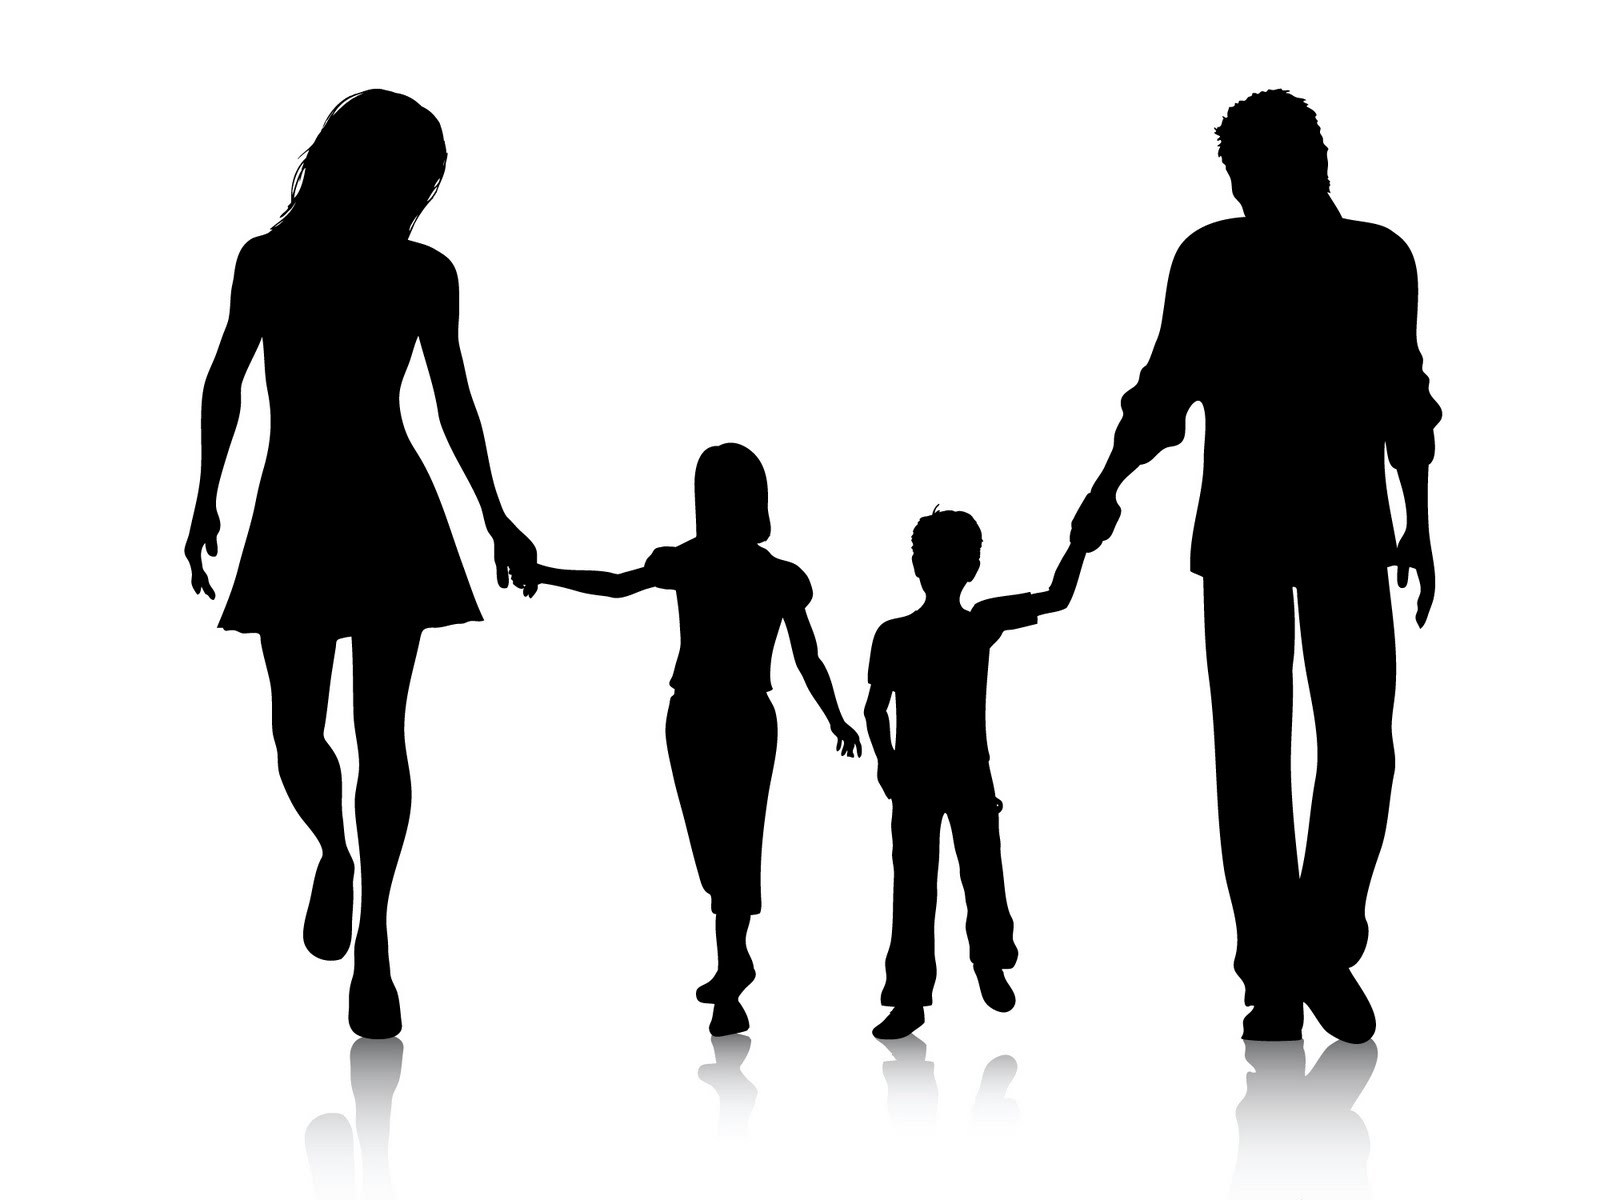 Family clipart 5 people 2 » Clipart Portal.